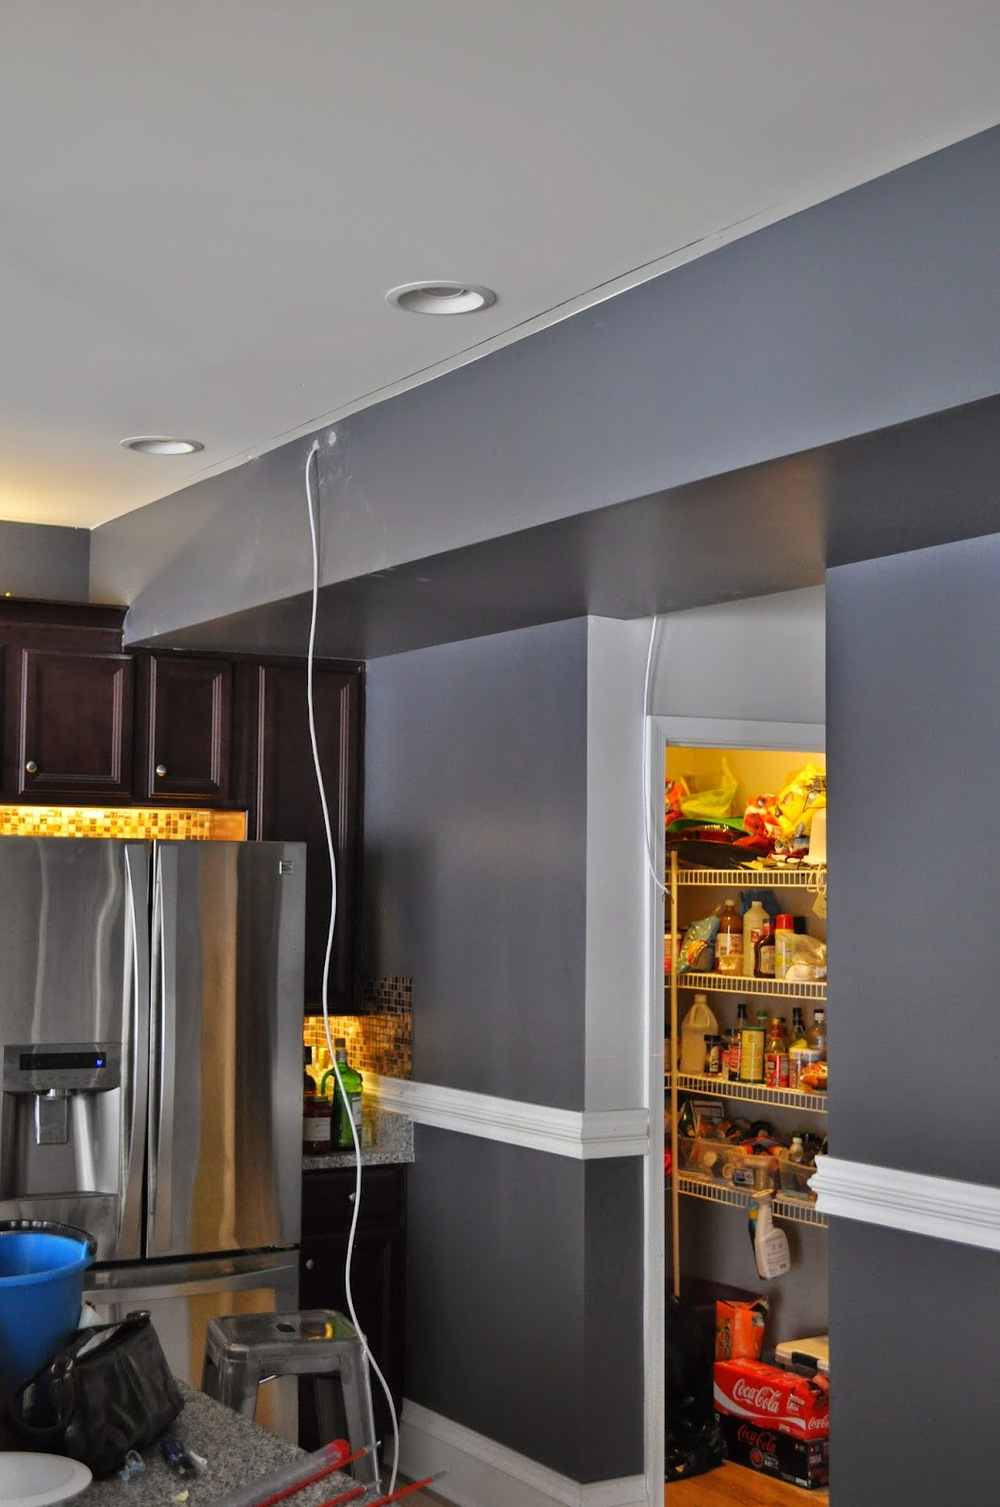 Crown Surround Another Rome Wiring Zones Kitchen From The Dining Room Was A Challenge I Able To Fish Wires Over Hvac Inside Bulkhead Come Out Into